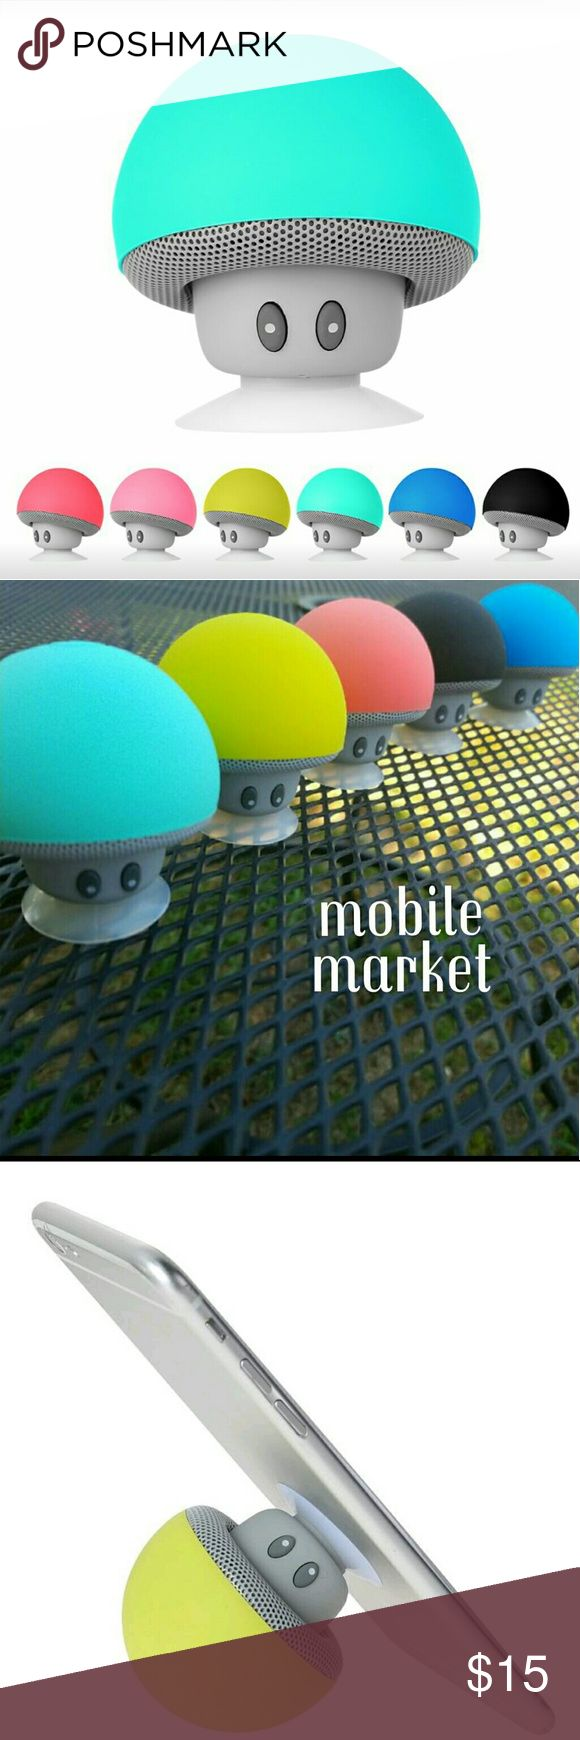 Shroom Bluetooth speaker Stick to the back of your phone, your car dash, or your bathroom mirror with the suction cup on the bottom! This mini wireless mushroom speaker comes with a built in Li-ion battery and high quality amplified sound! 2.5 hours playback time. Mobile market  Colors in order from cover photo: peachy pink, pink, green, turquoise, blue, and black  *control volume with your phone and the speaker! *go back or skip tracks with the press of a button  Includes: 1 speaker, 1…